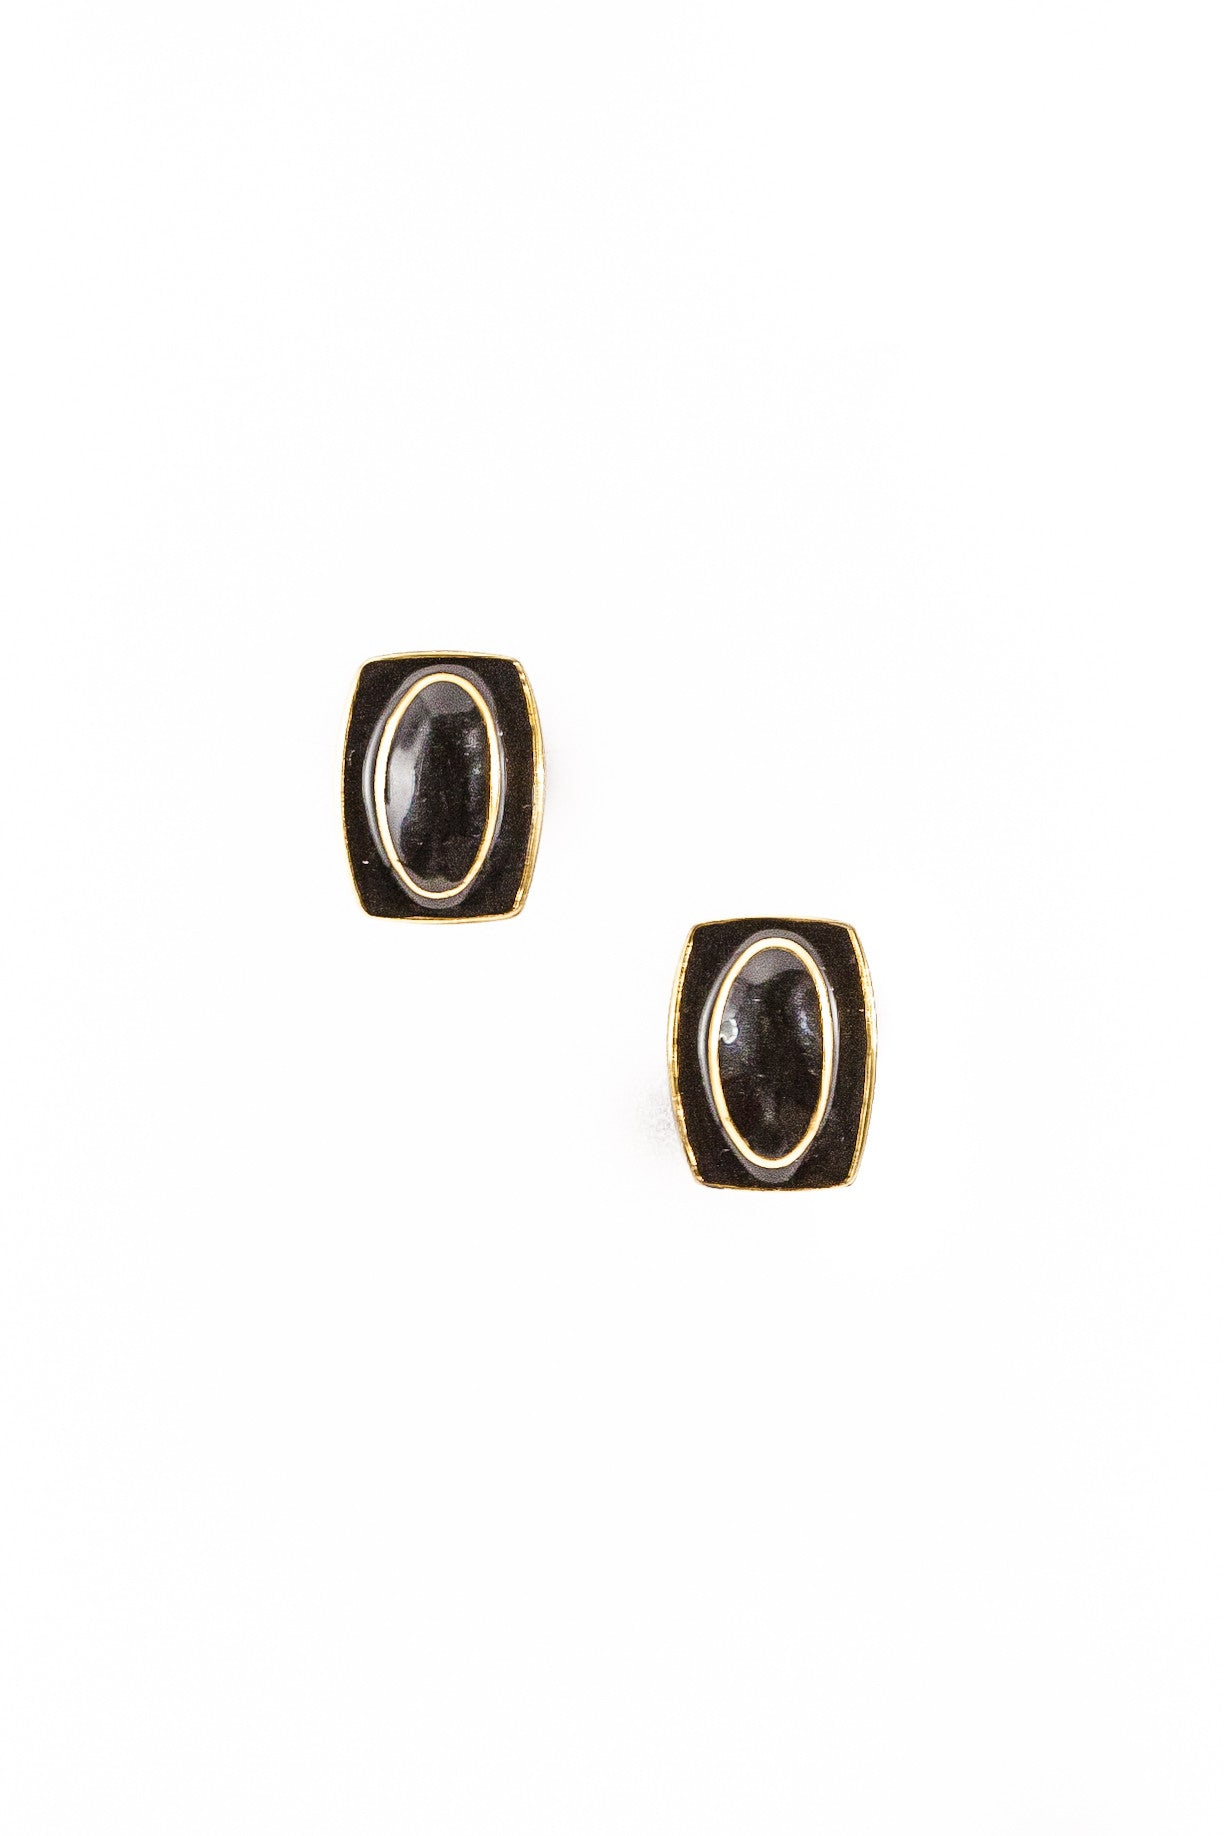 80's__Monet__Black Rectangle Mod Earrings